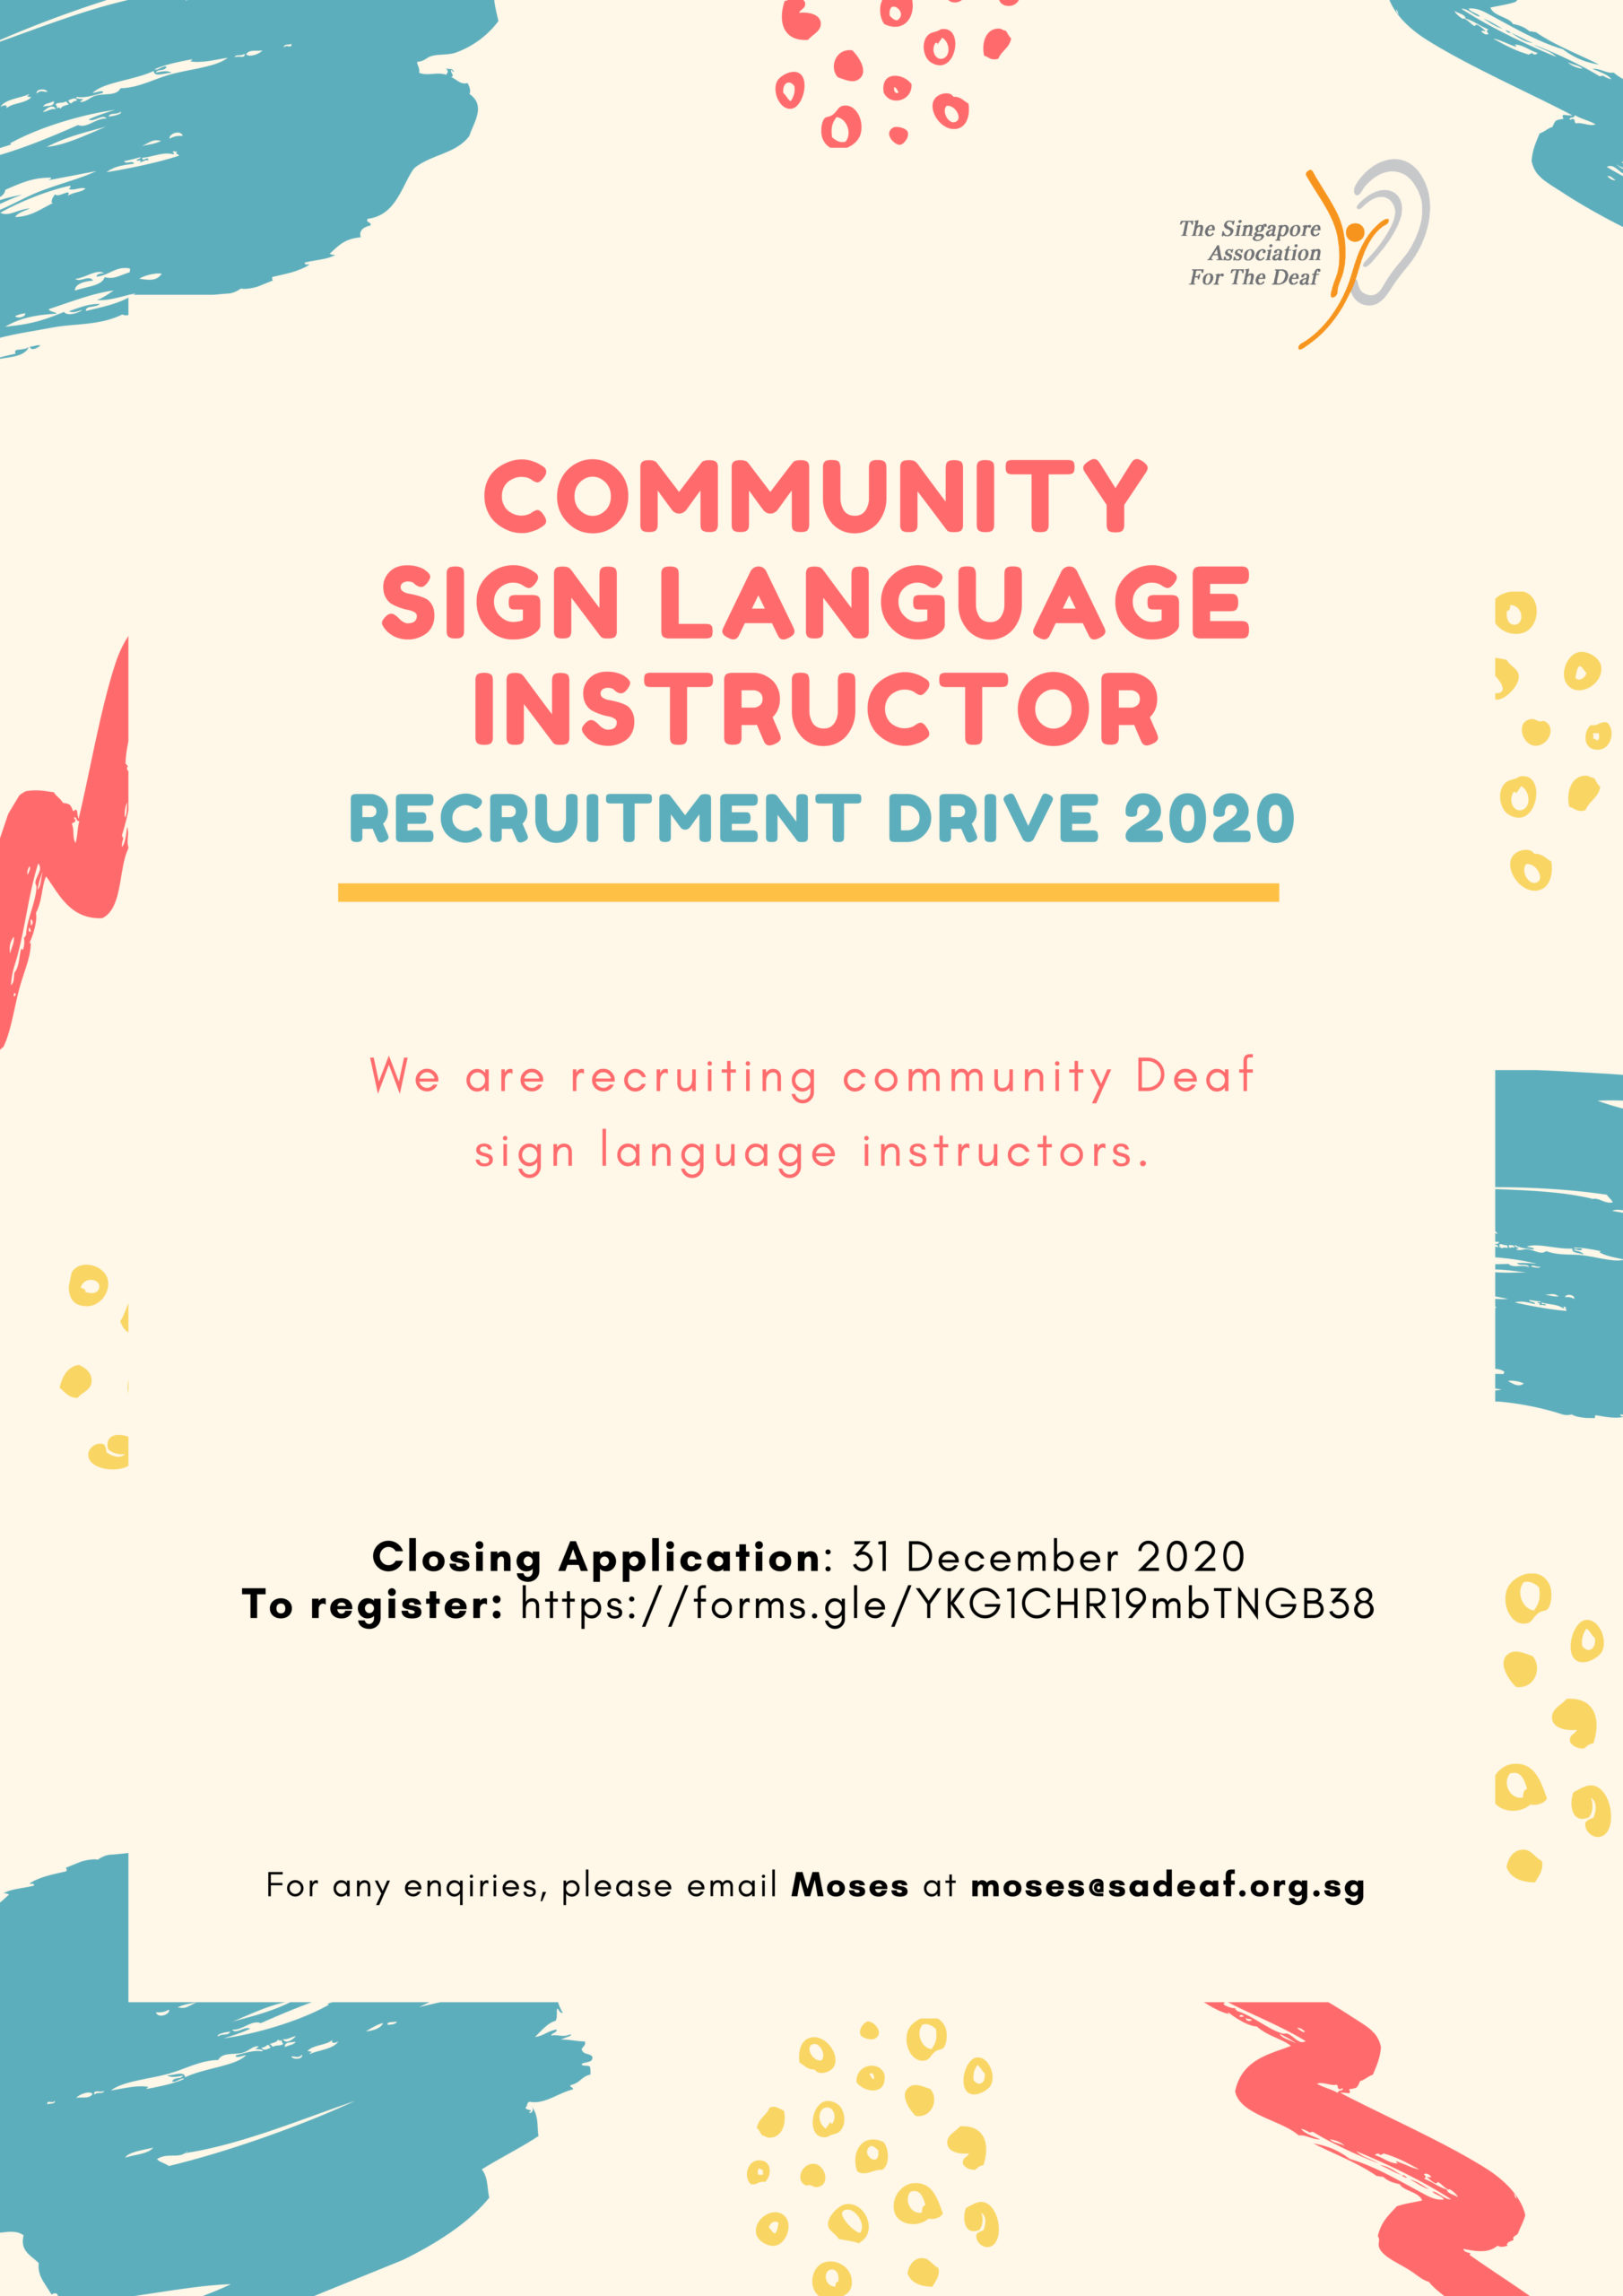 Community Sign Language Instructors